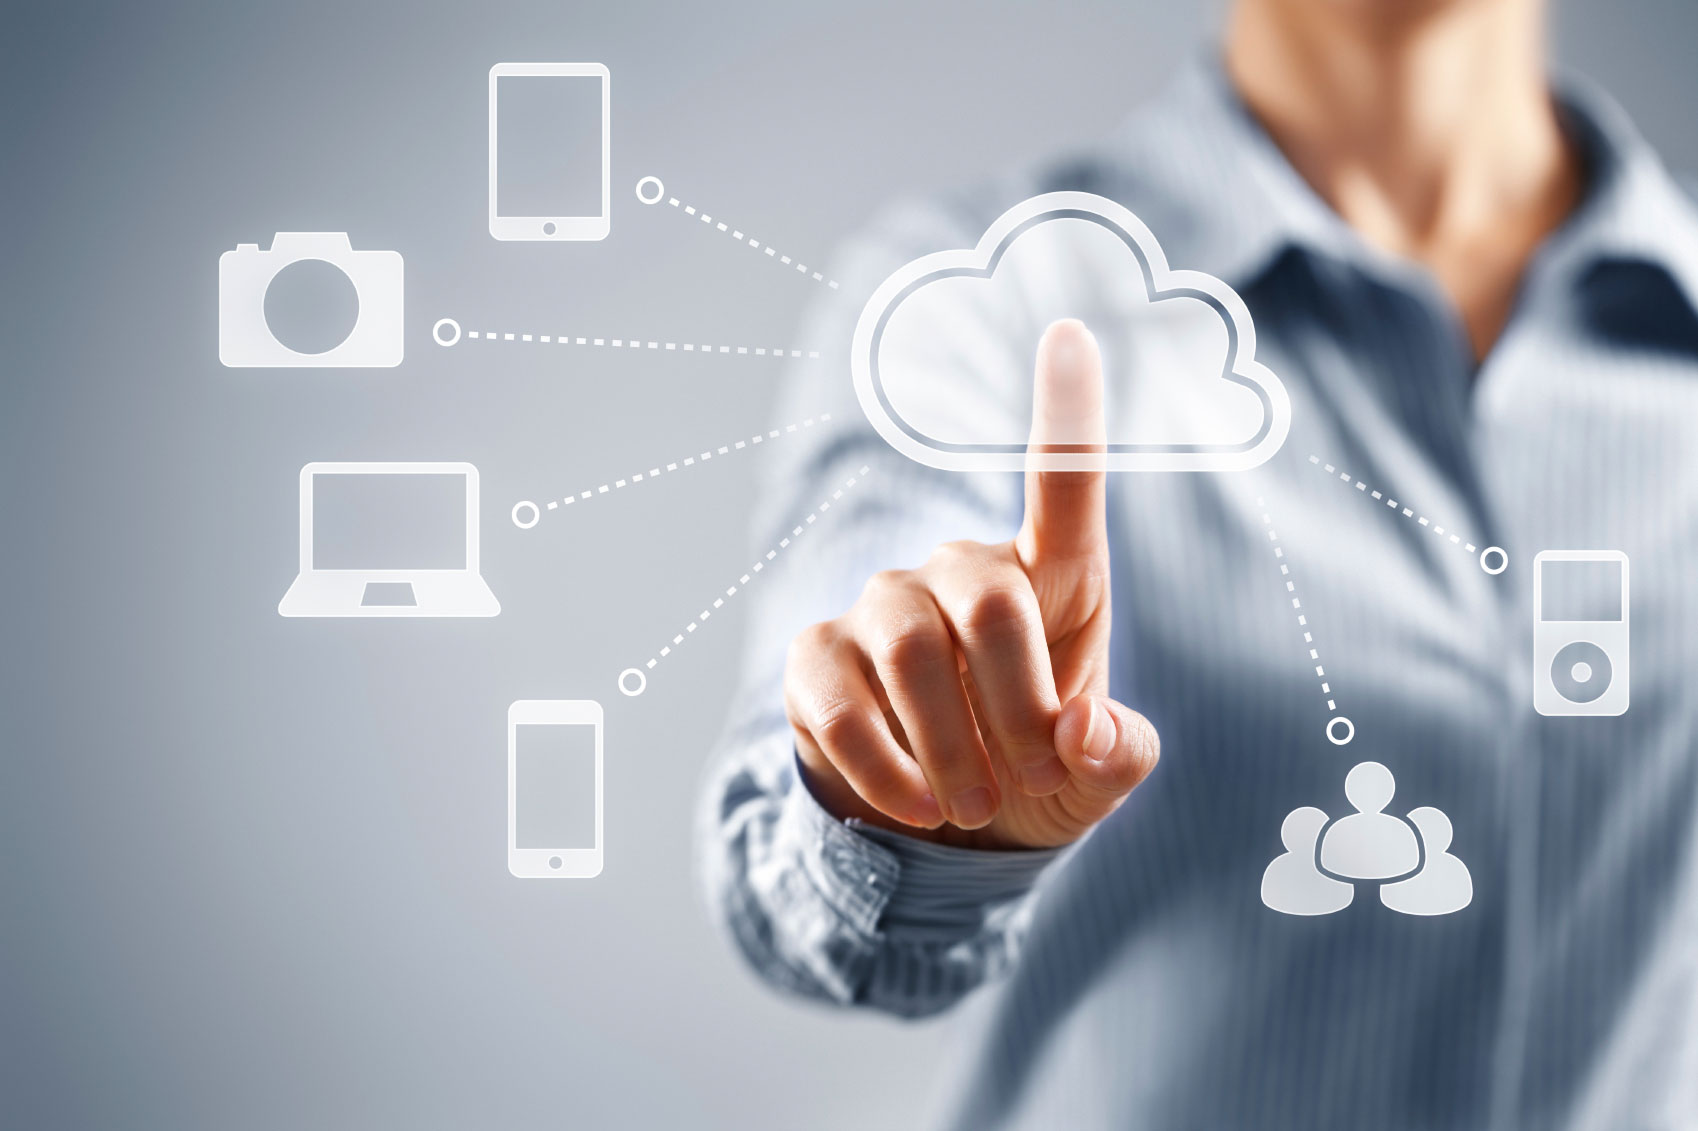 technology shaping modern businesses with technology technology cloud